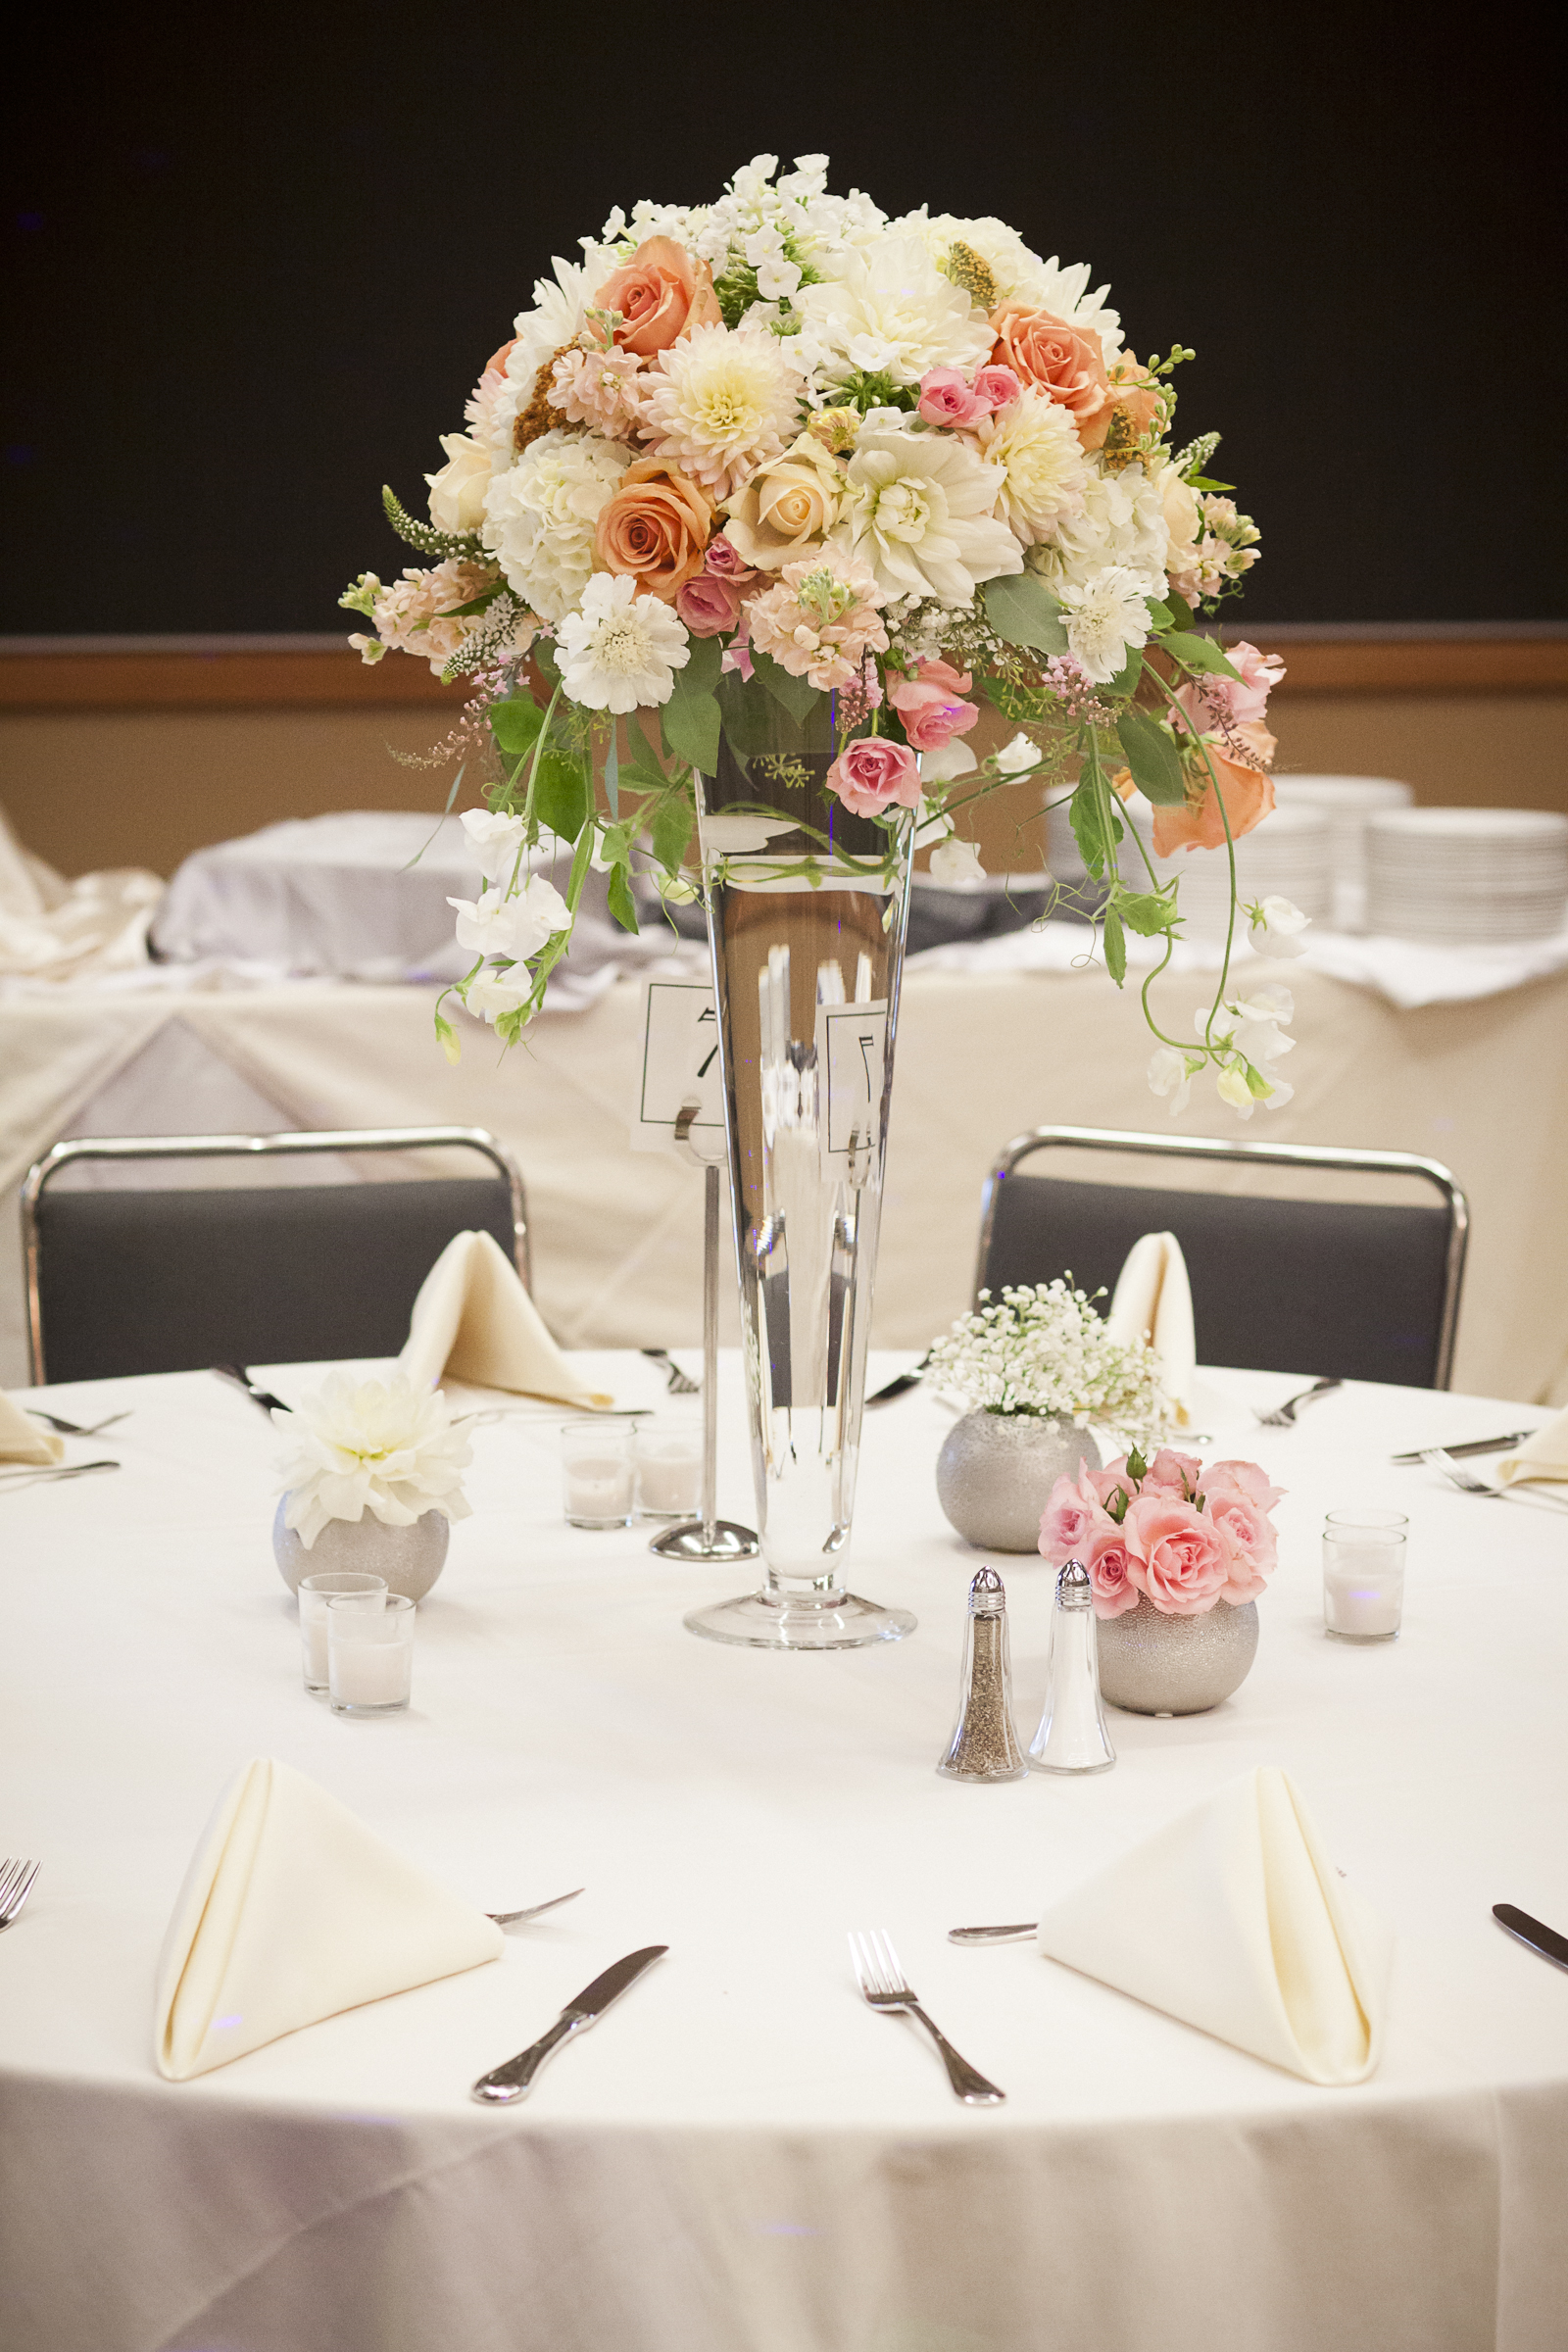 Romantic Style Wedding in Peach, Pearl and Blush | Tobey Nelson ...